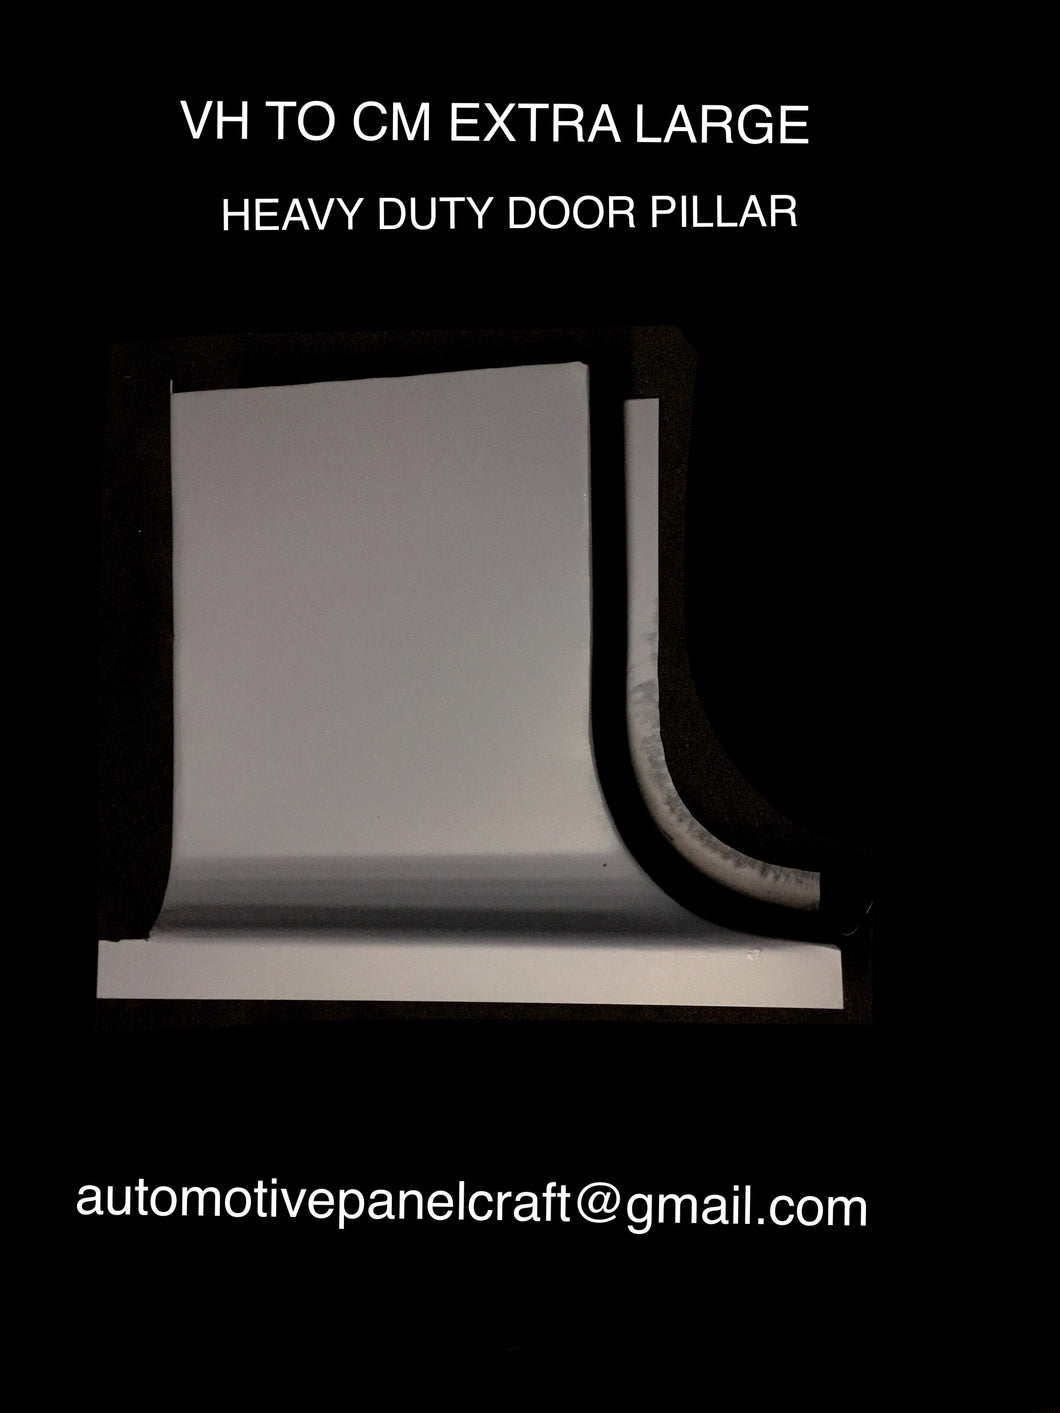 VALIANT VH CM EXTRA LARGE DOOR PILLAR EXTRA HEAVY DUTY